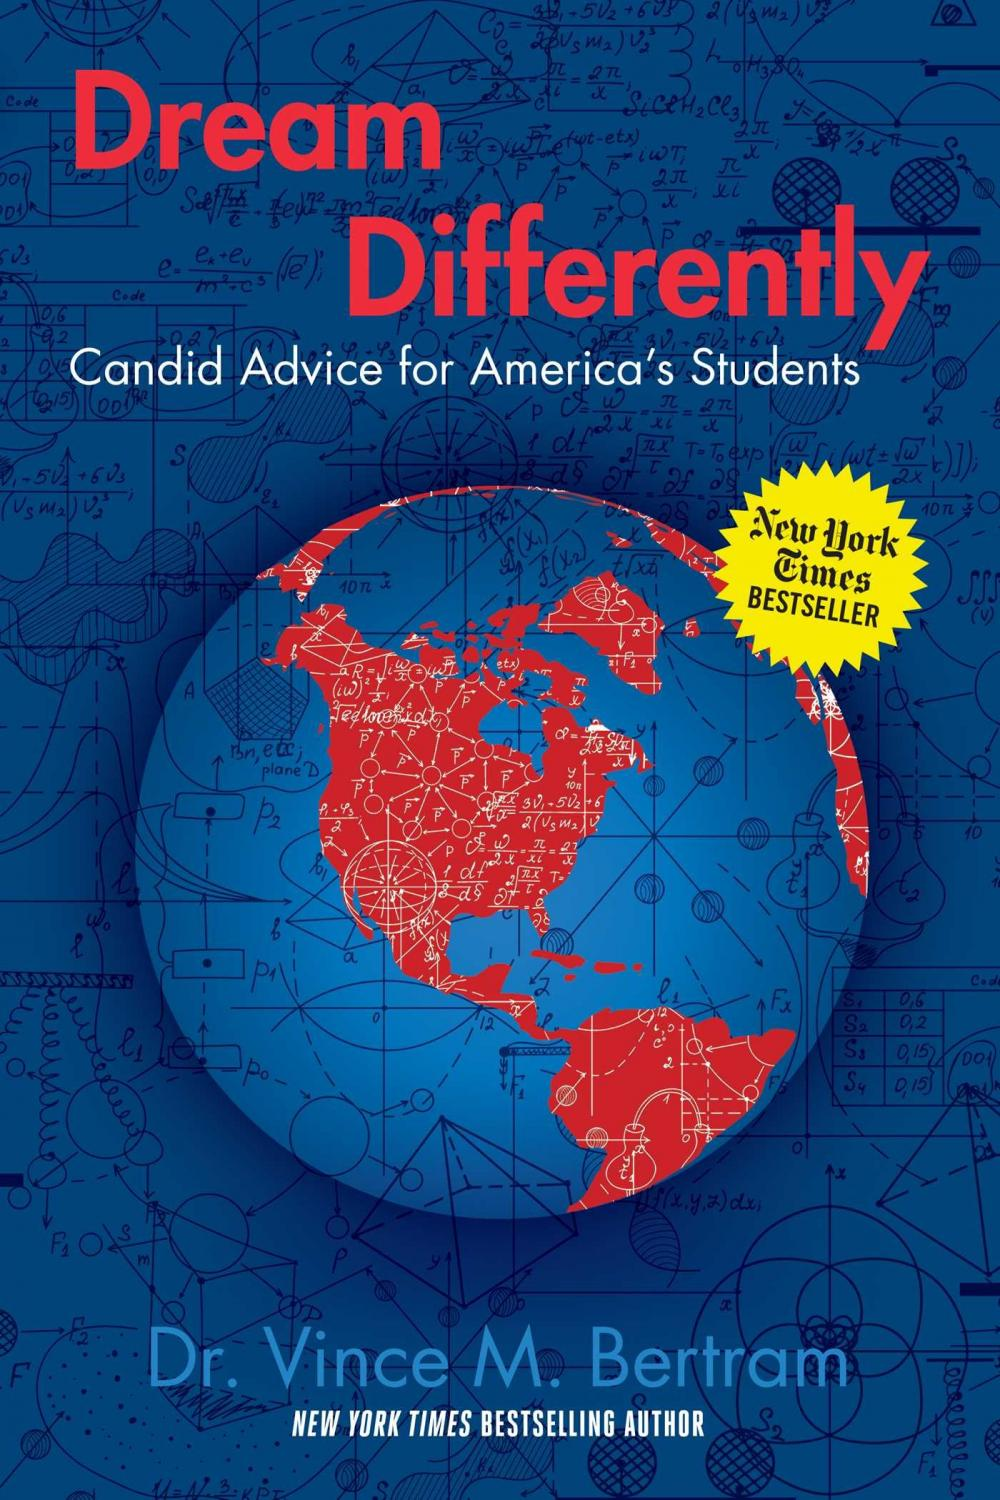 Book Cover of Dream Differently.jpg